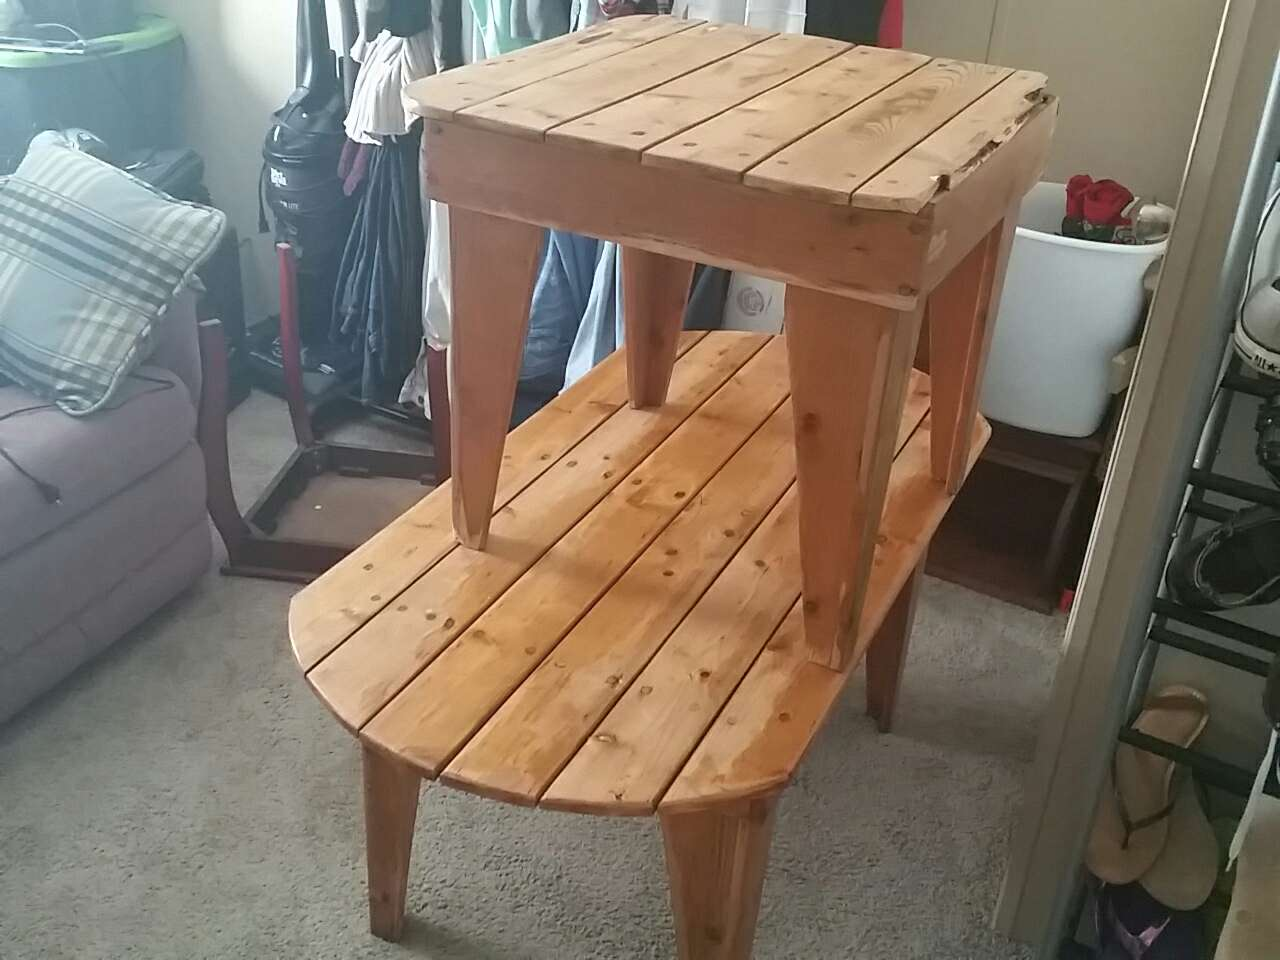 Home And Garden Products In Inman Ga Letgo